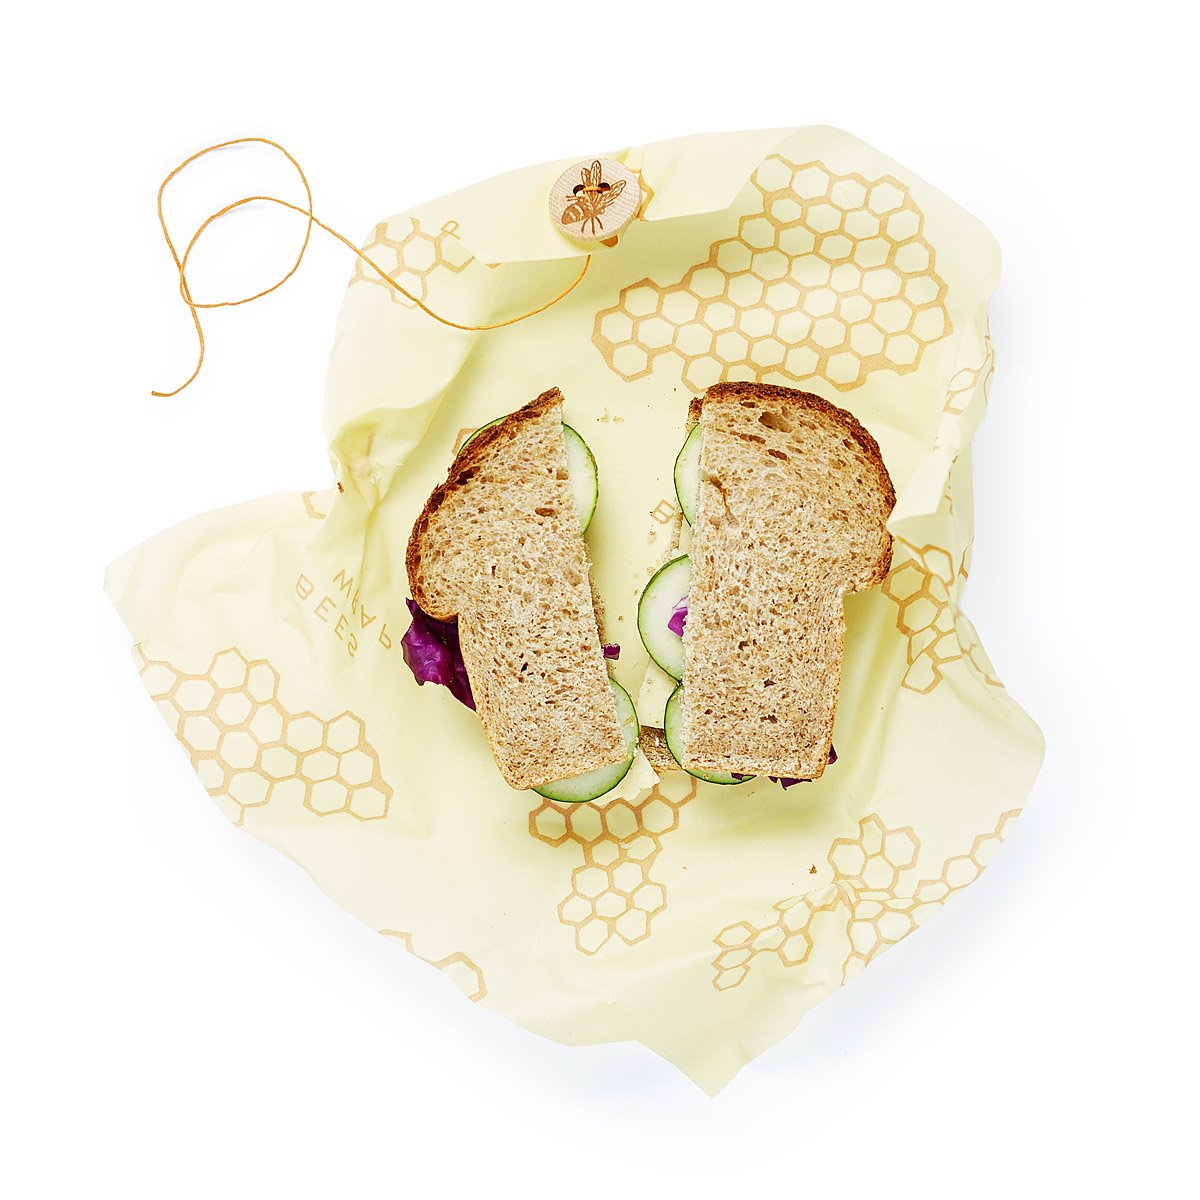 Beeswax Reusable Sandwich Bags